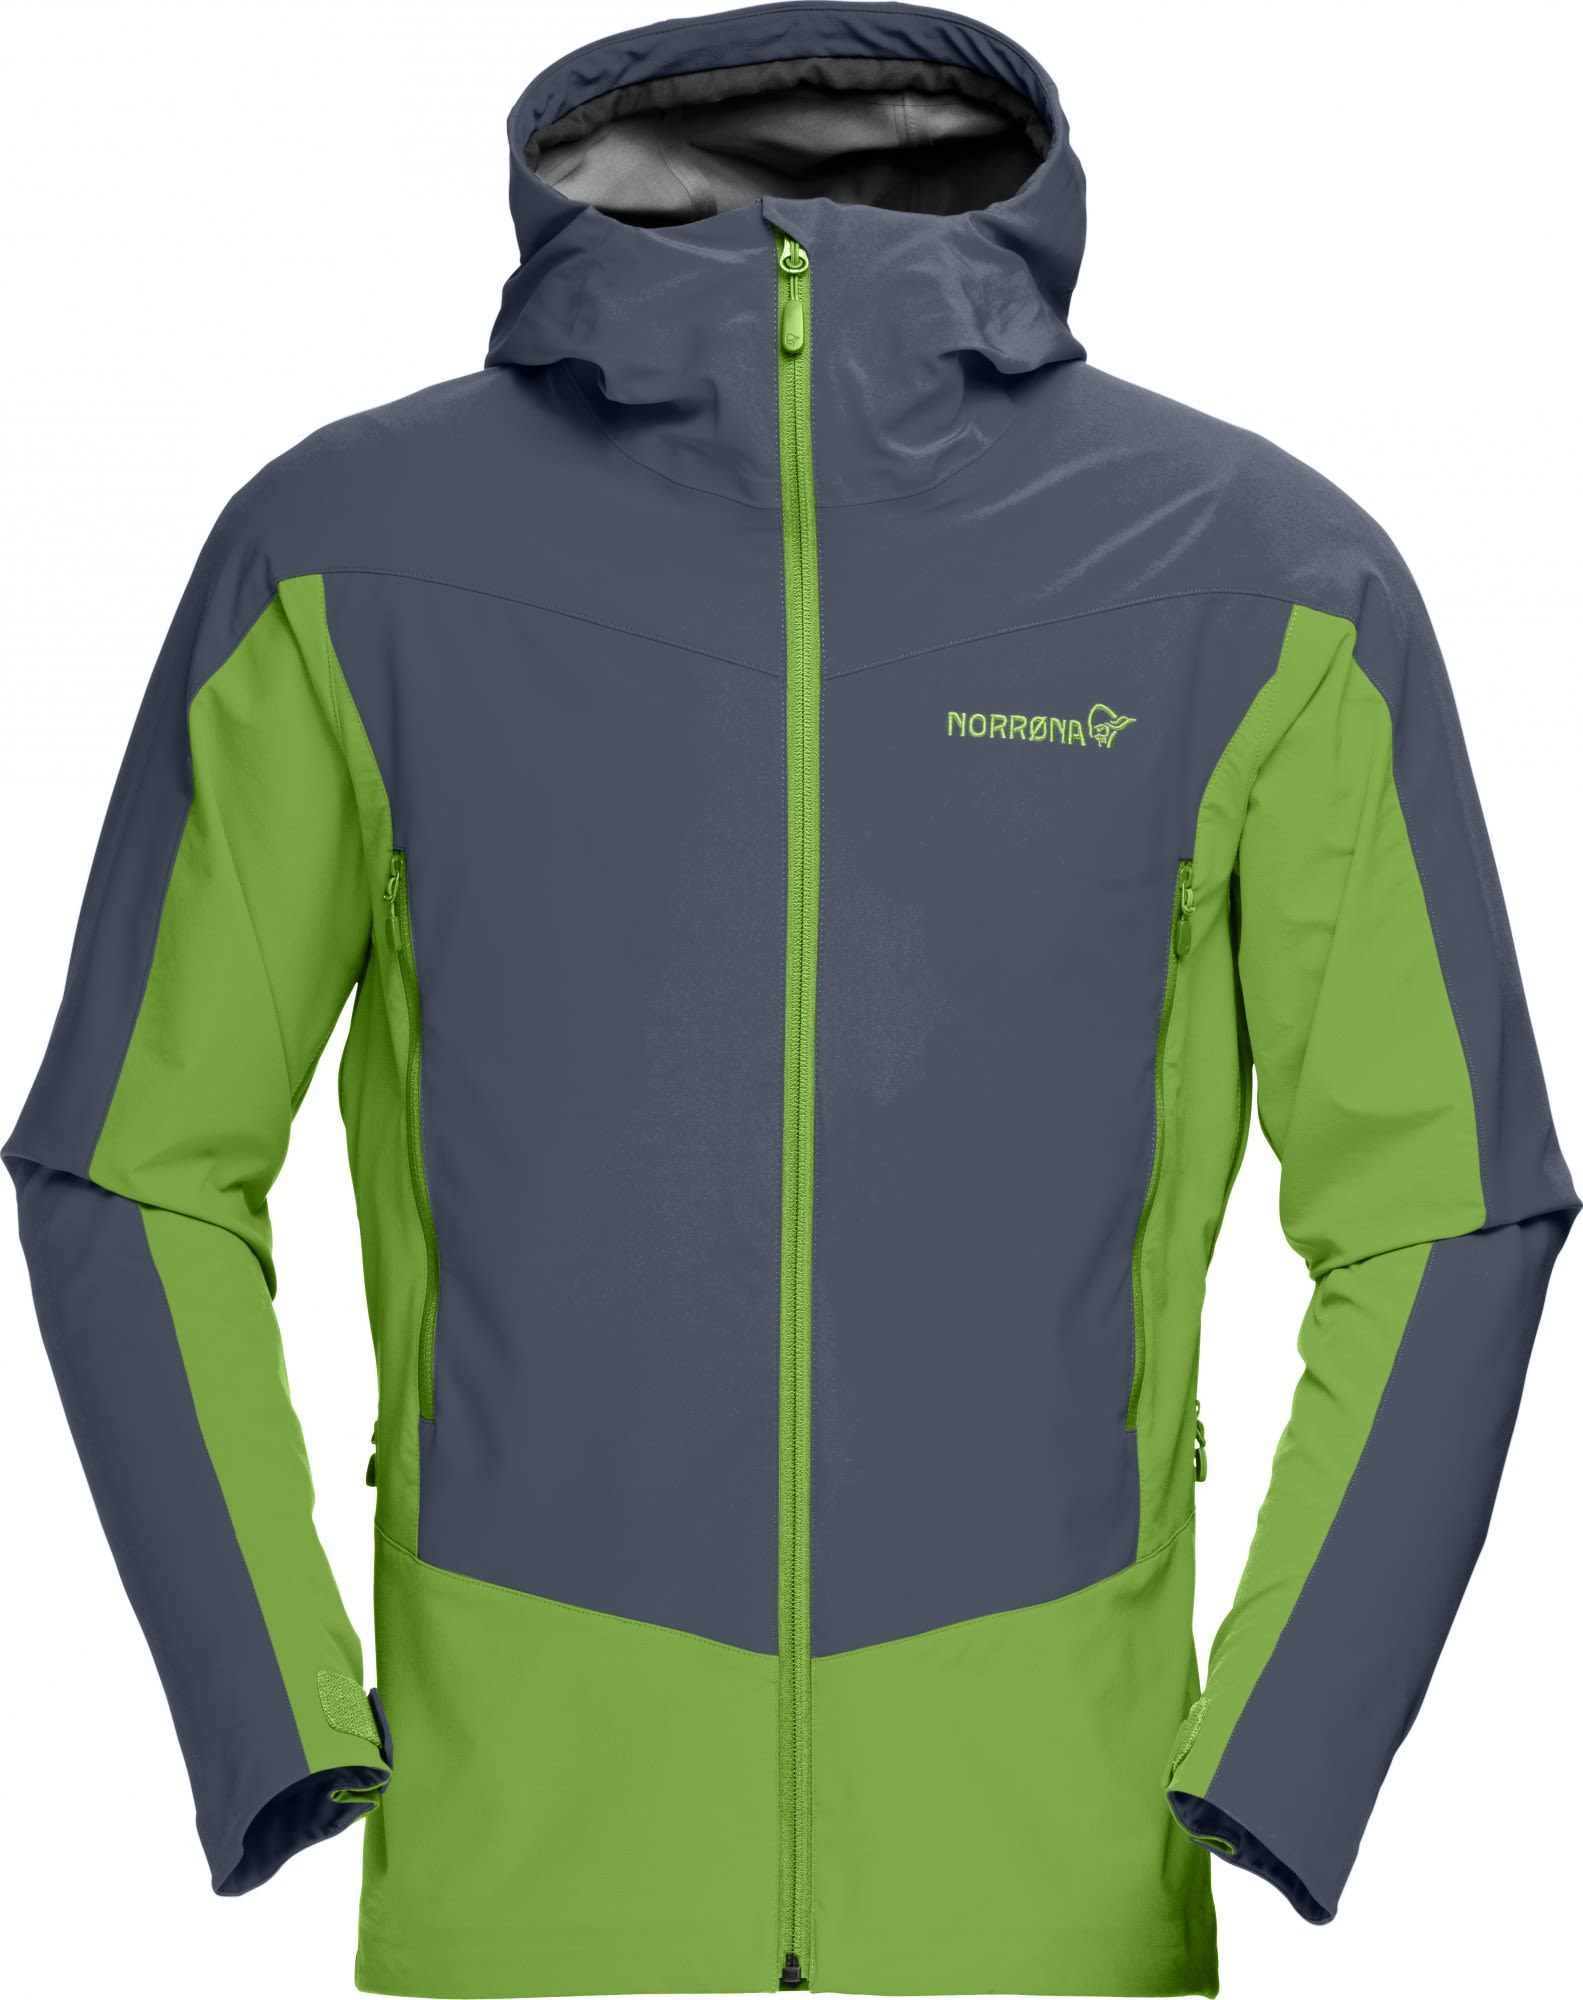 Norrona Falketind Windstopper Hybrid Jacket Schwarz, Male L -Farbe Cool Black, L